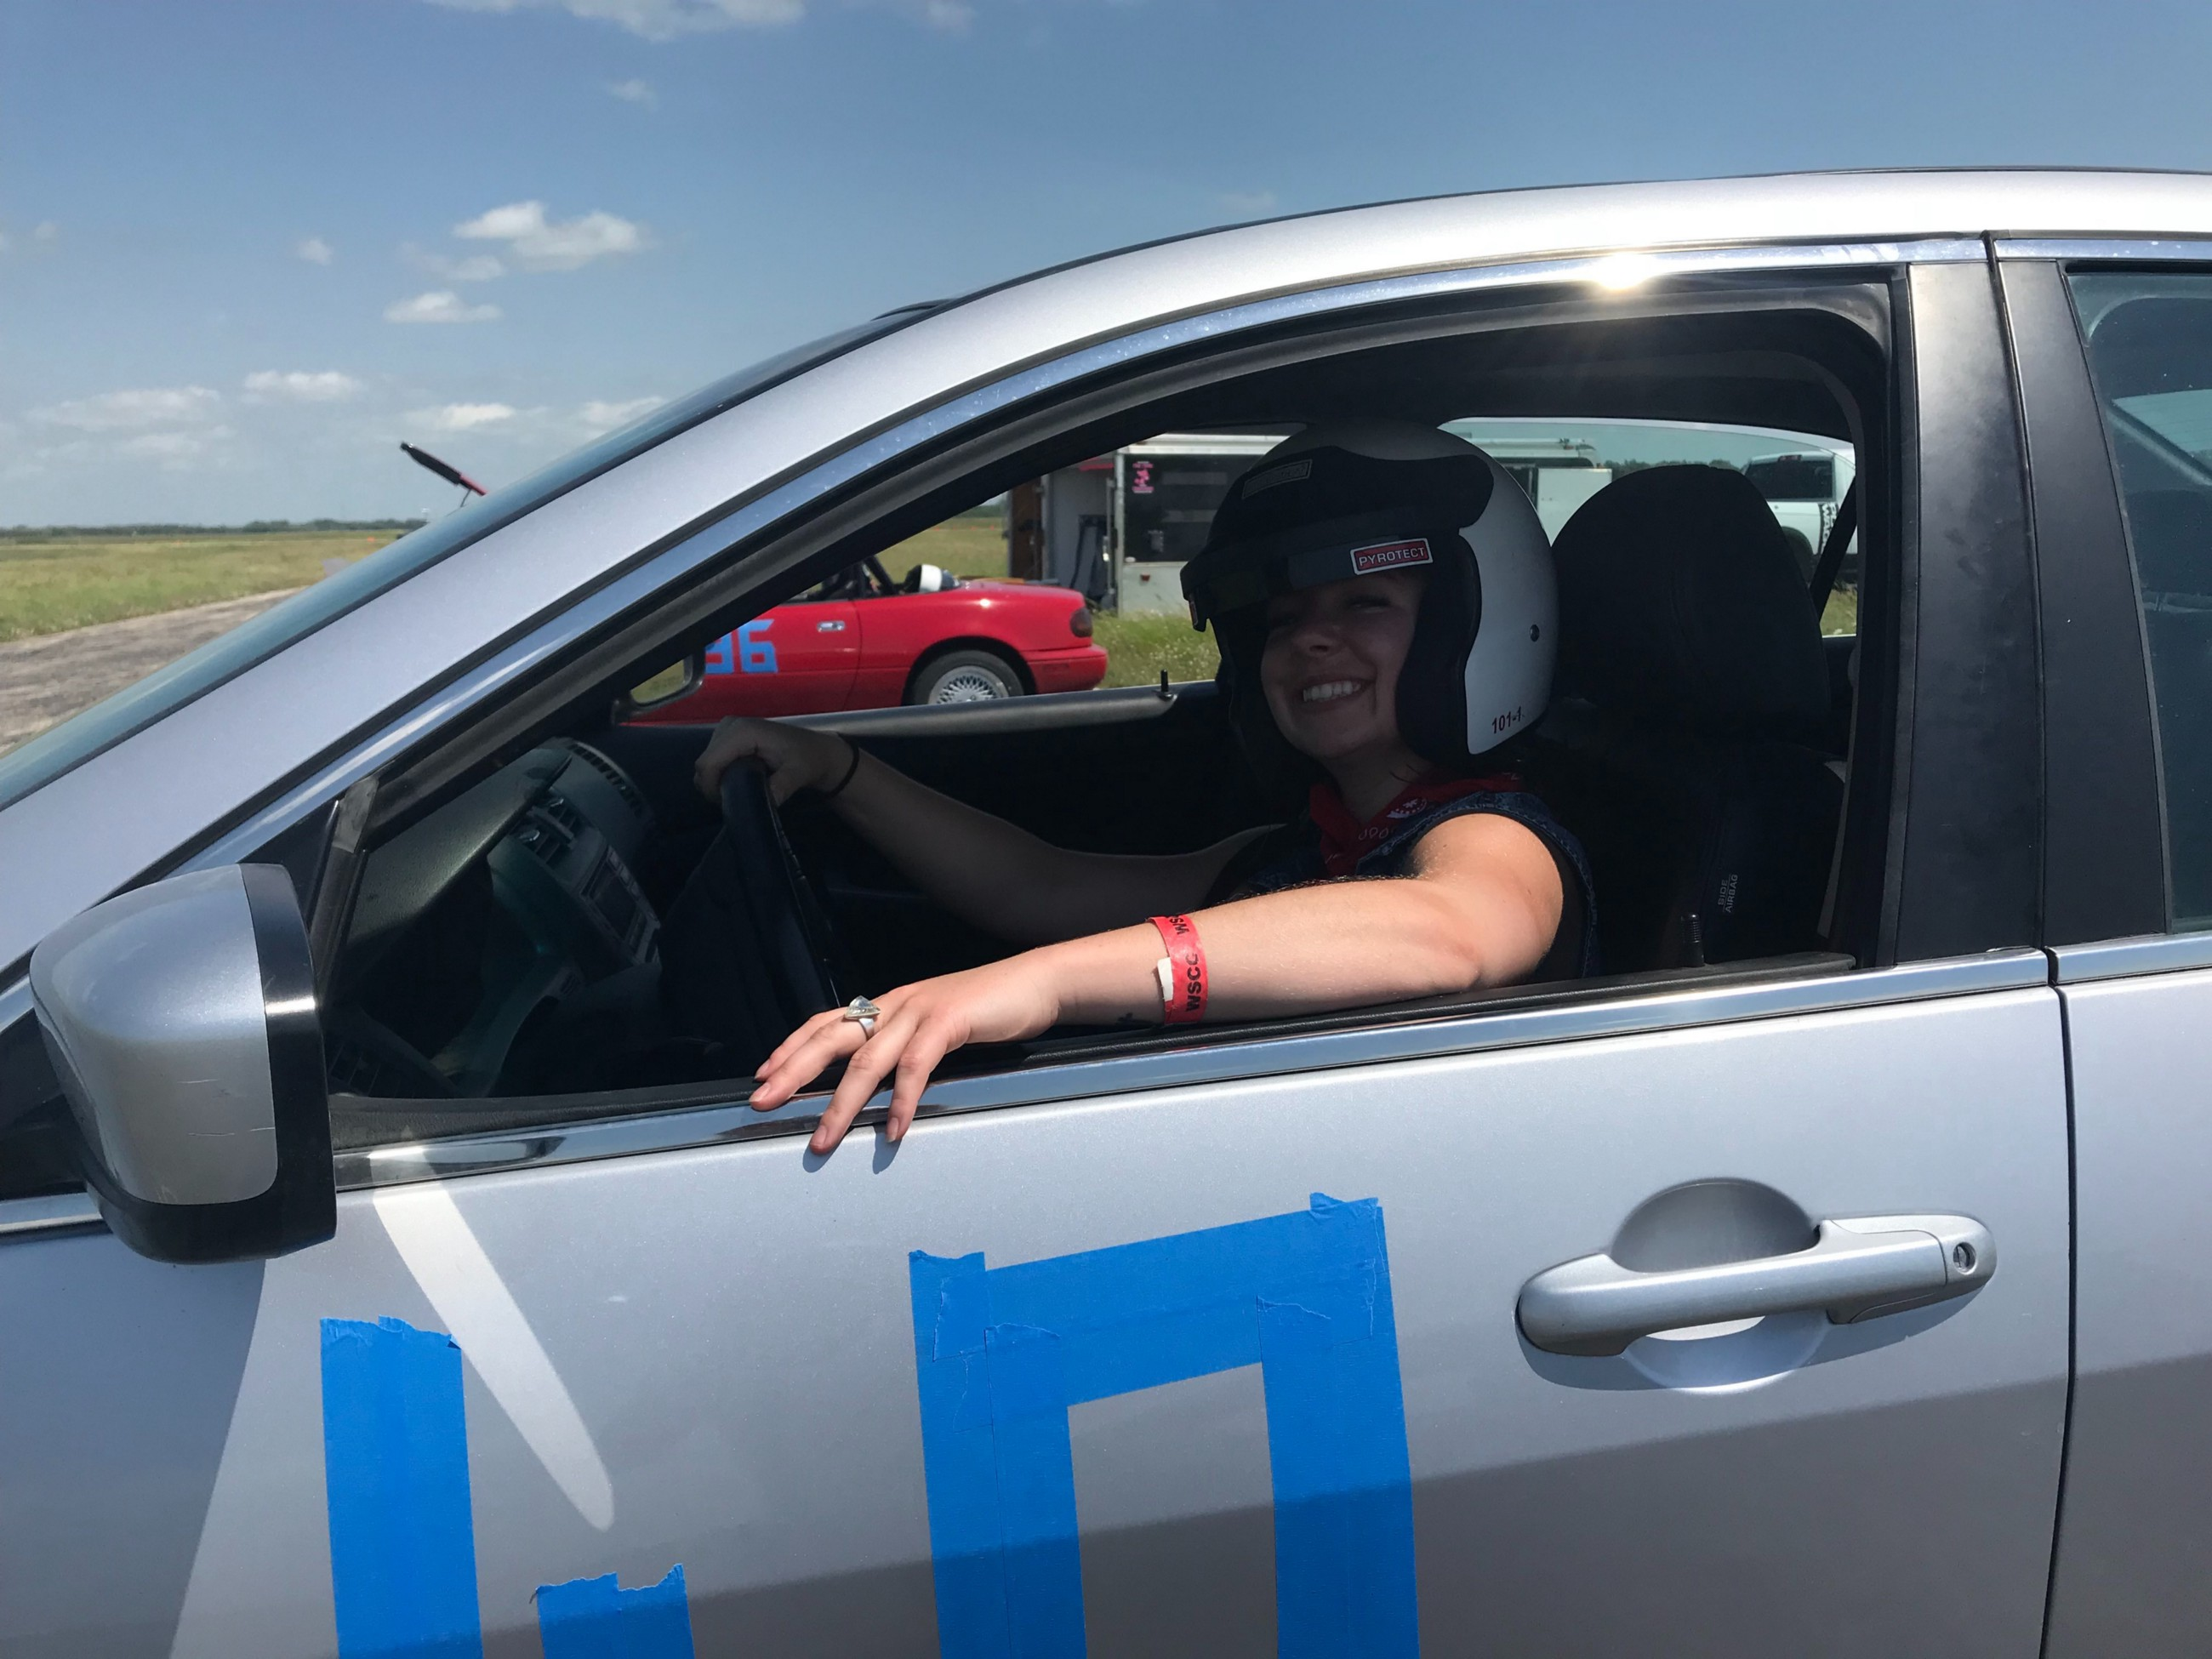 I Did Autocross As the Only Girl